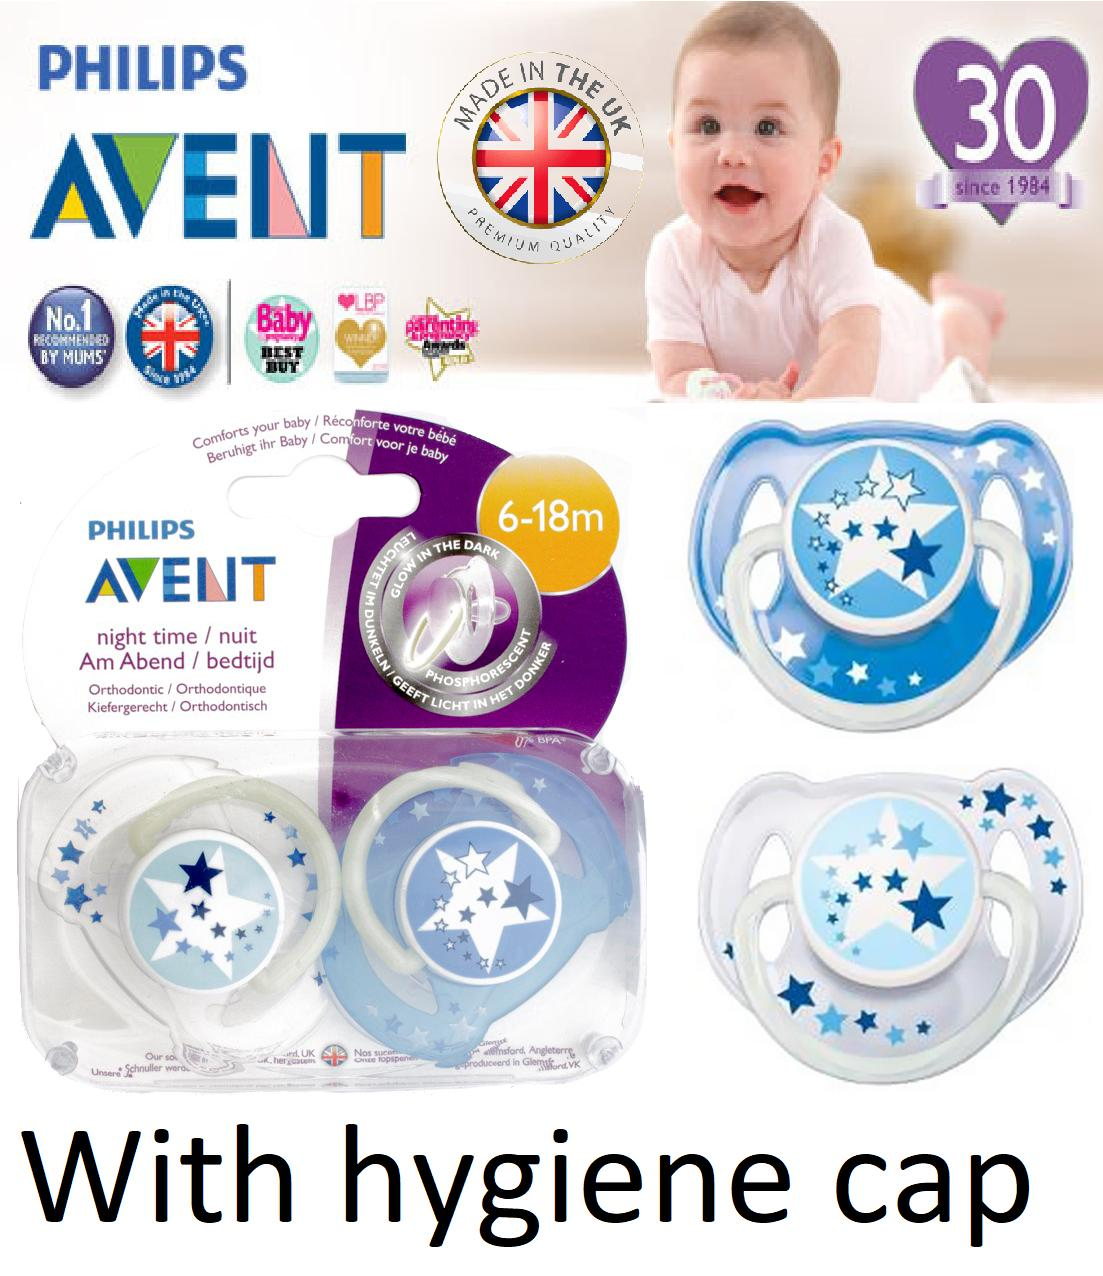 2 Philips Avent Glow In The Dark Pacifier / Soother / Dummy Night Time Blue Stars Design - Made In Uk With Snap On Cap. 6-18m By Imaginarium.